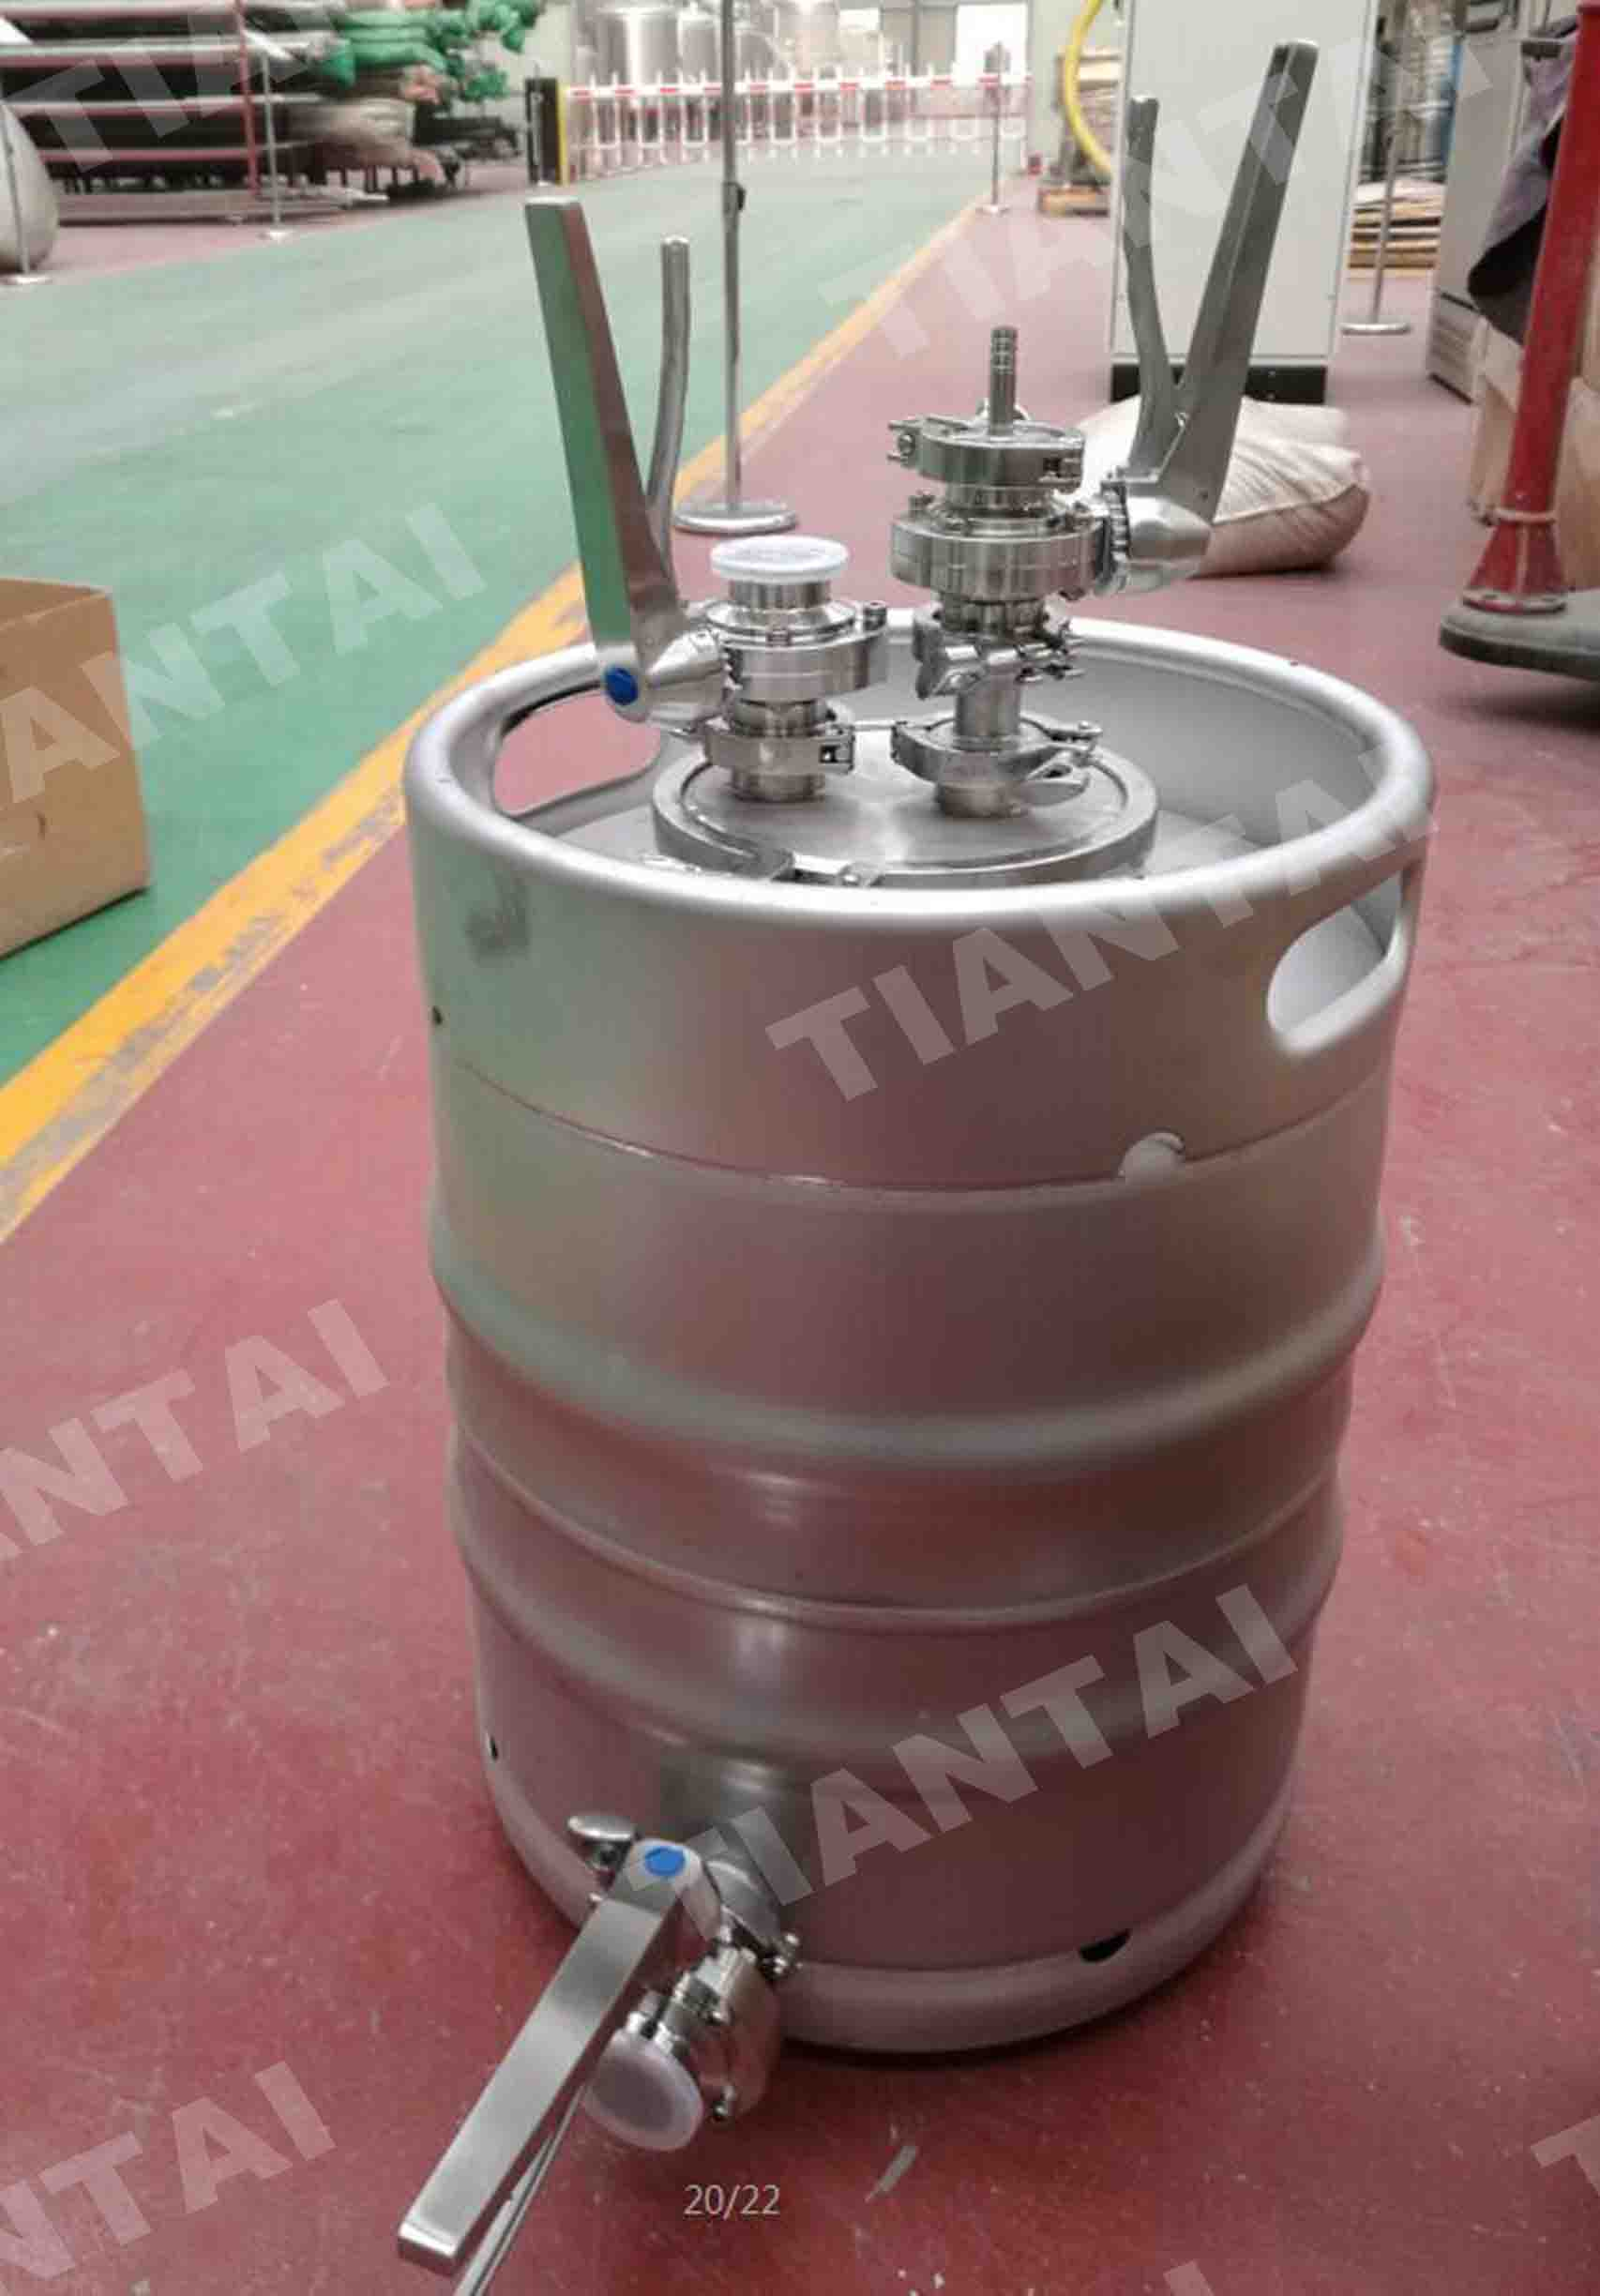 New design of the Yeast Feeder